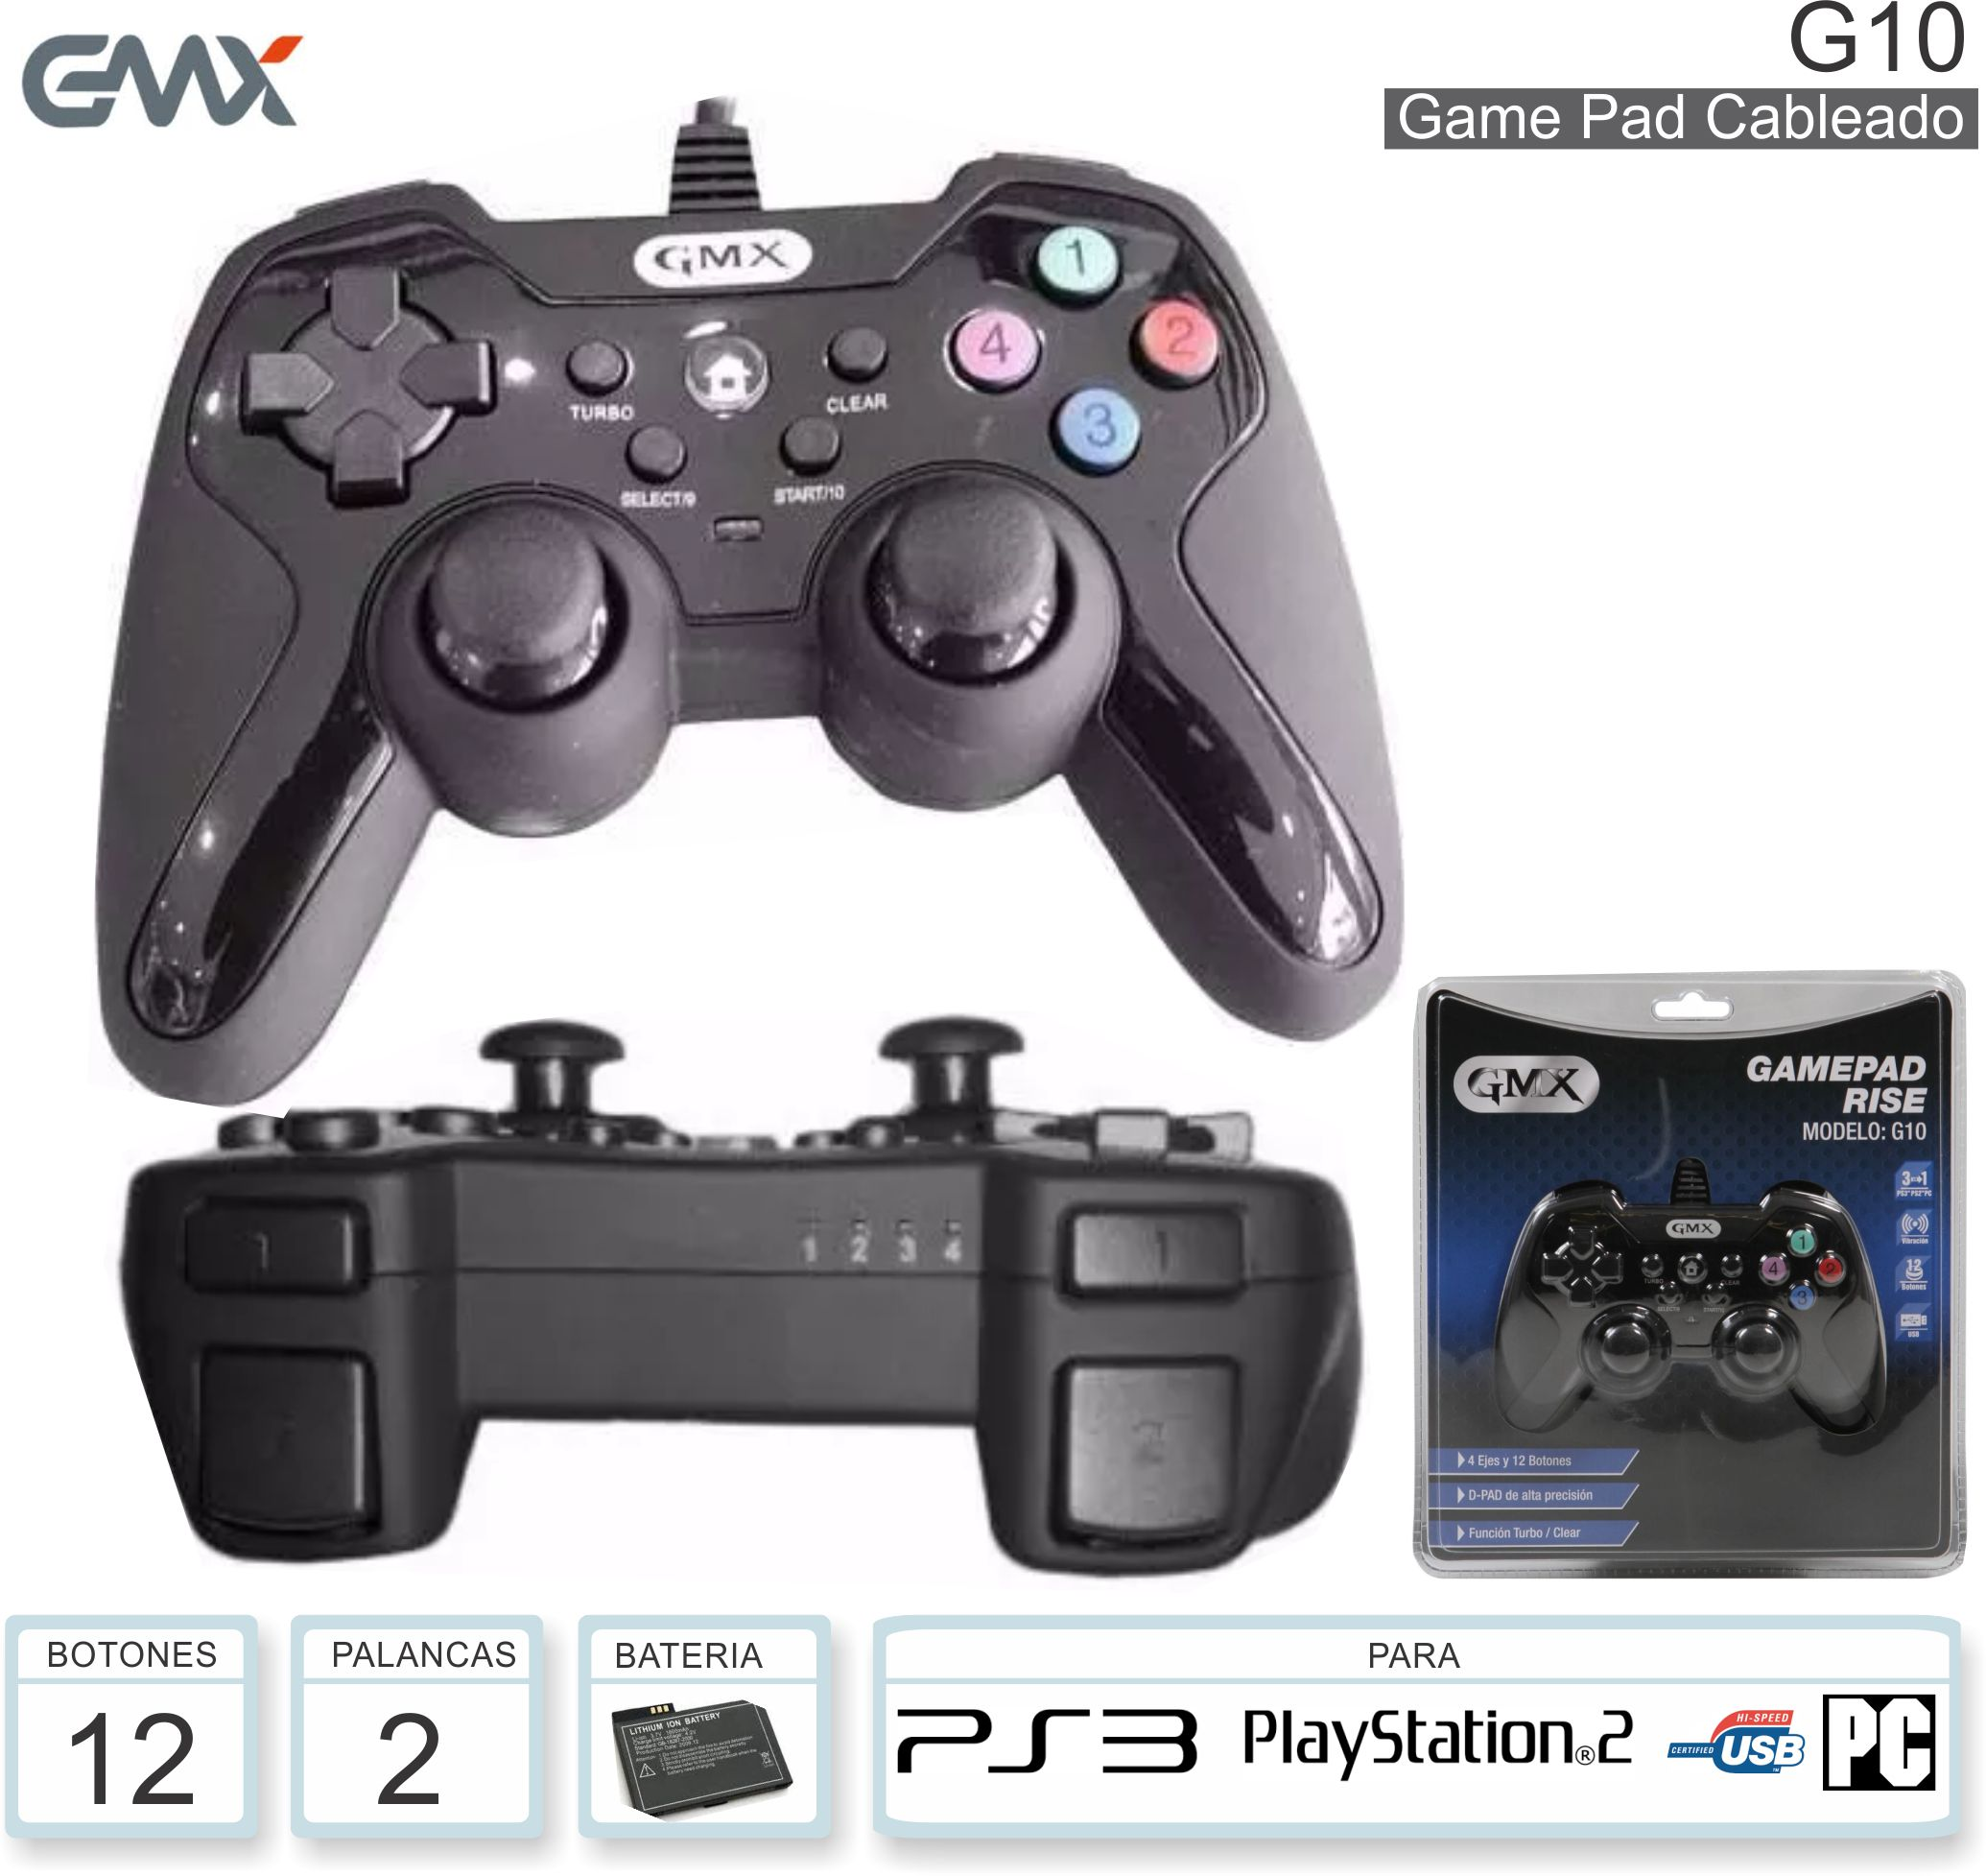 Game Pad GMX G10 PS3 PS2 PC USB